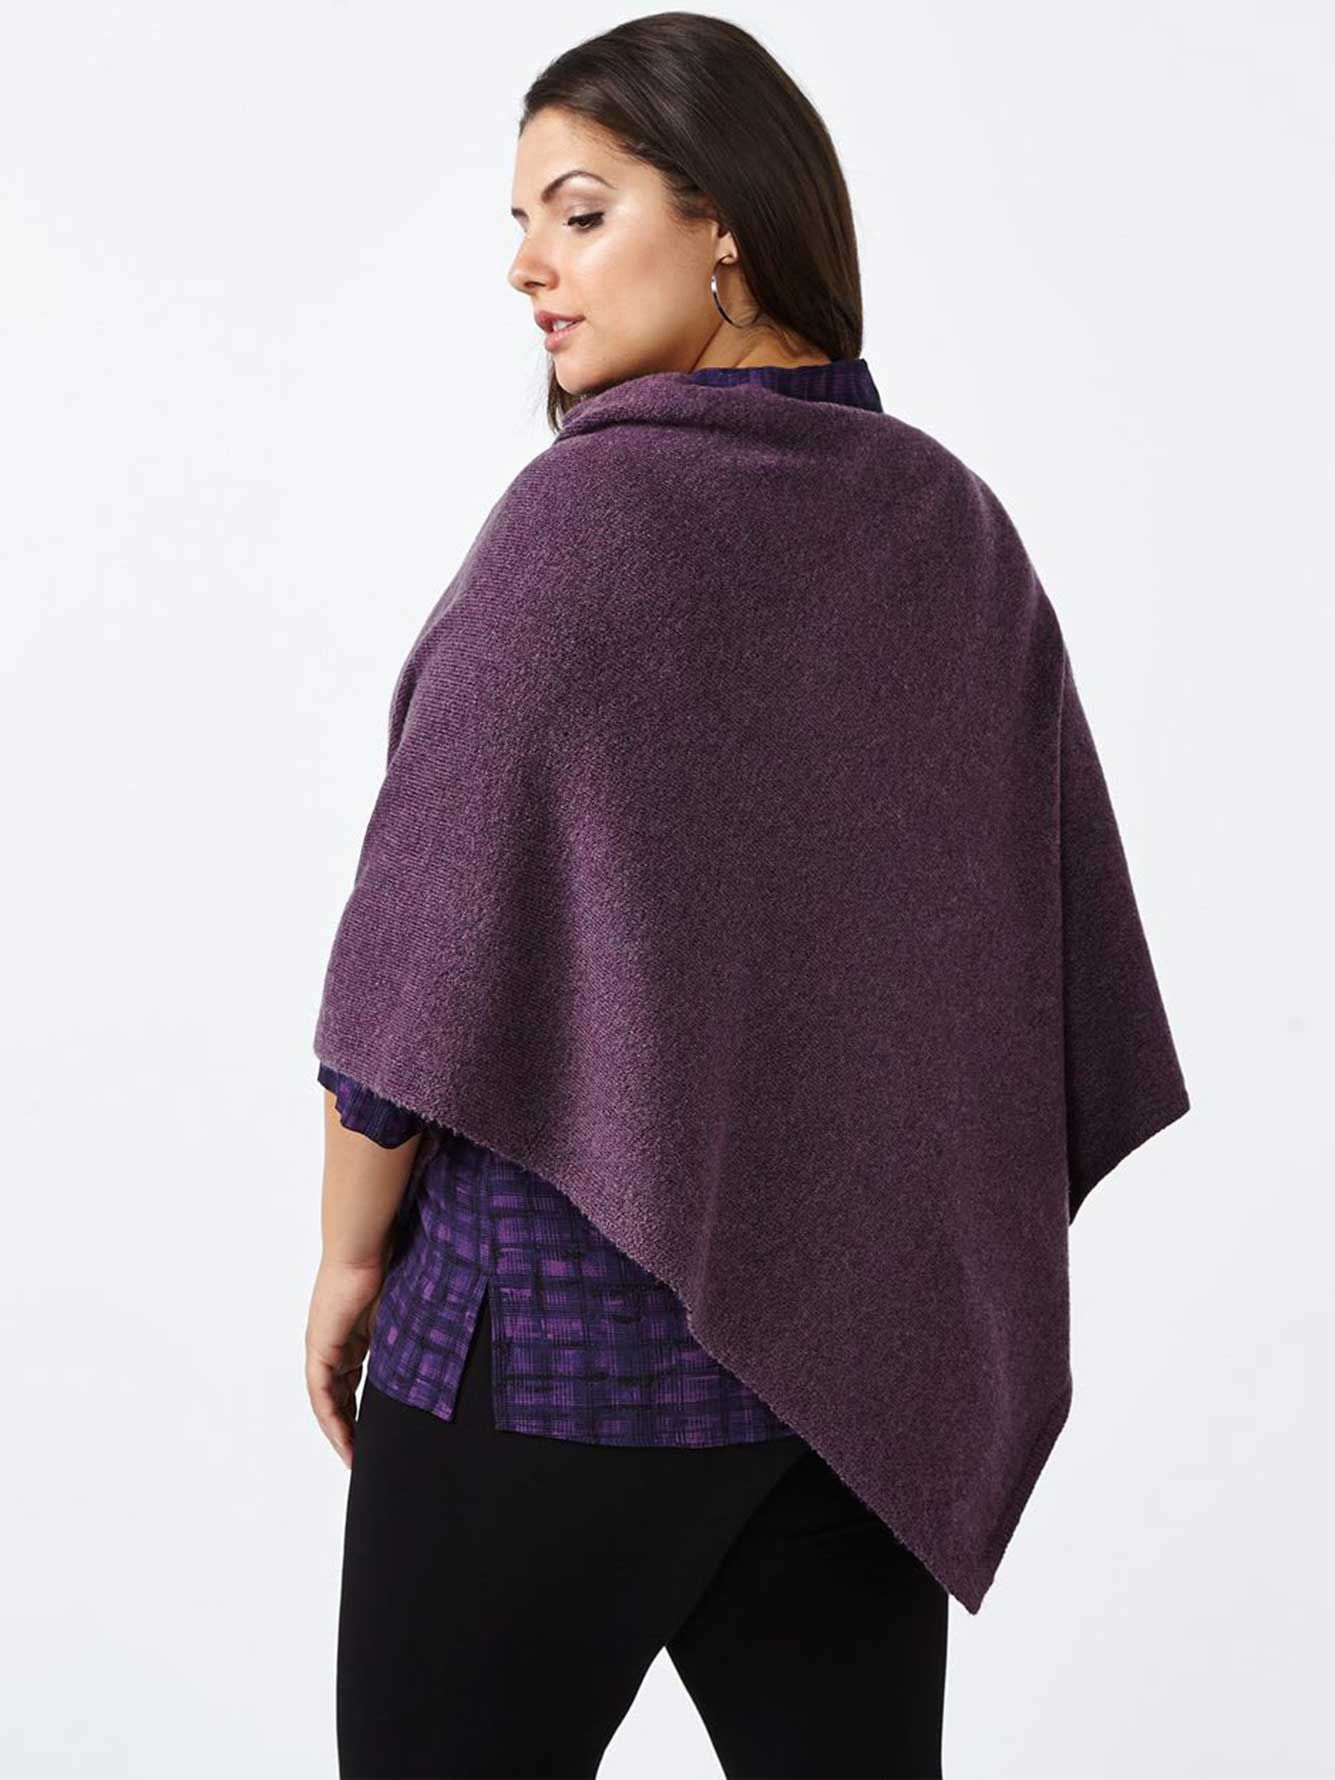 Knit Sweater Poncho